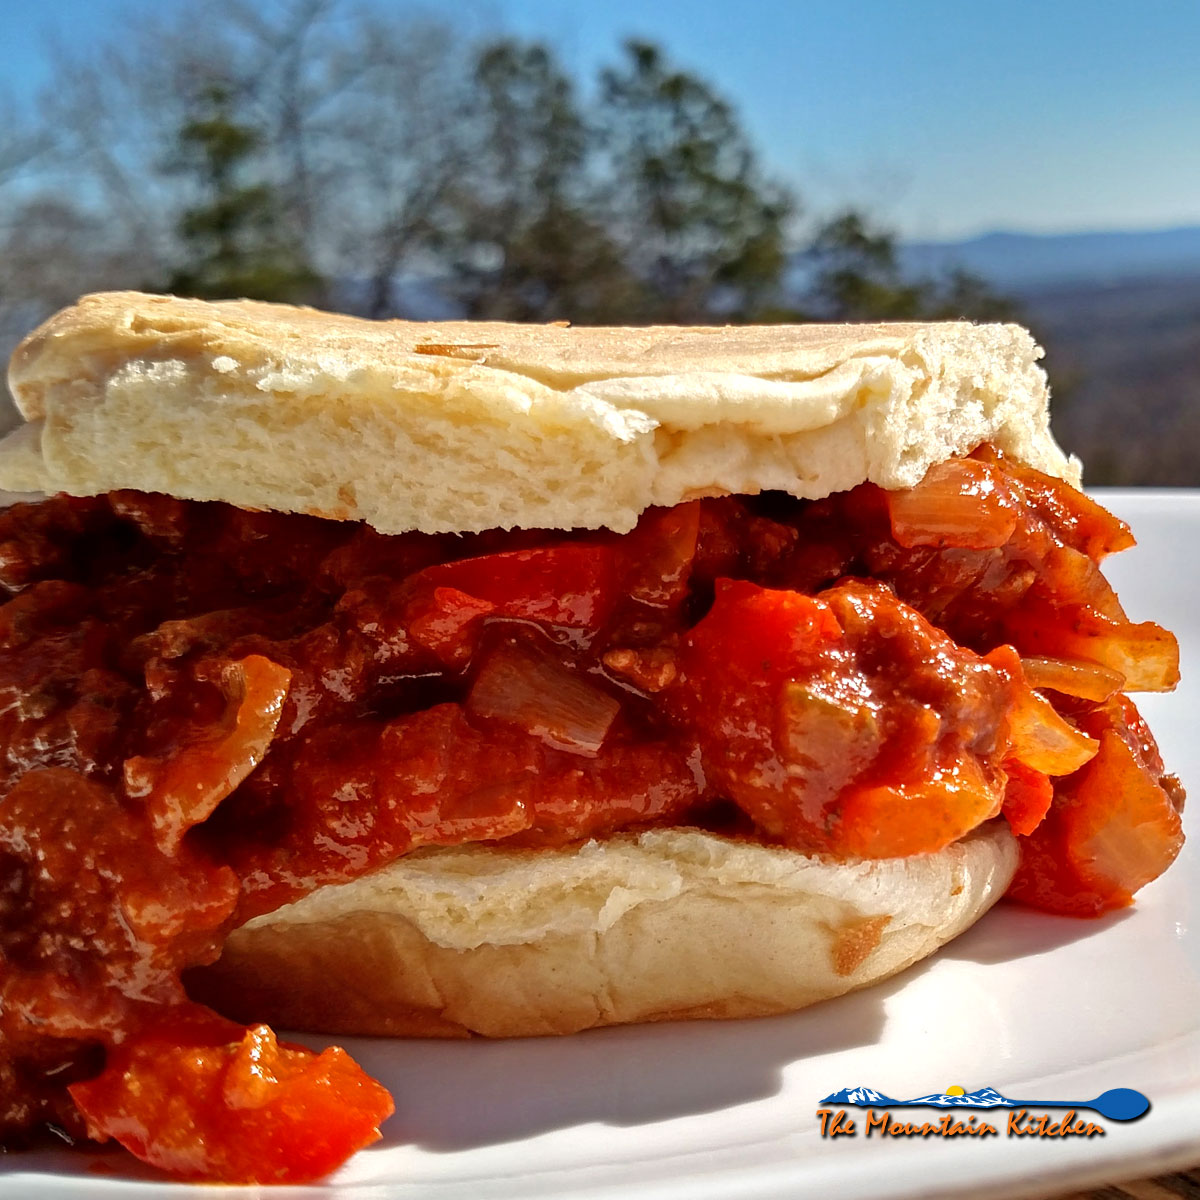 Mouthwatering Sloppy Joes are quick, easy, and inexpensive to make. This American classic is guaranteed to satisfy anyone at the supper table.